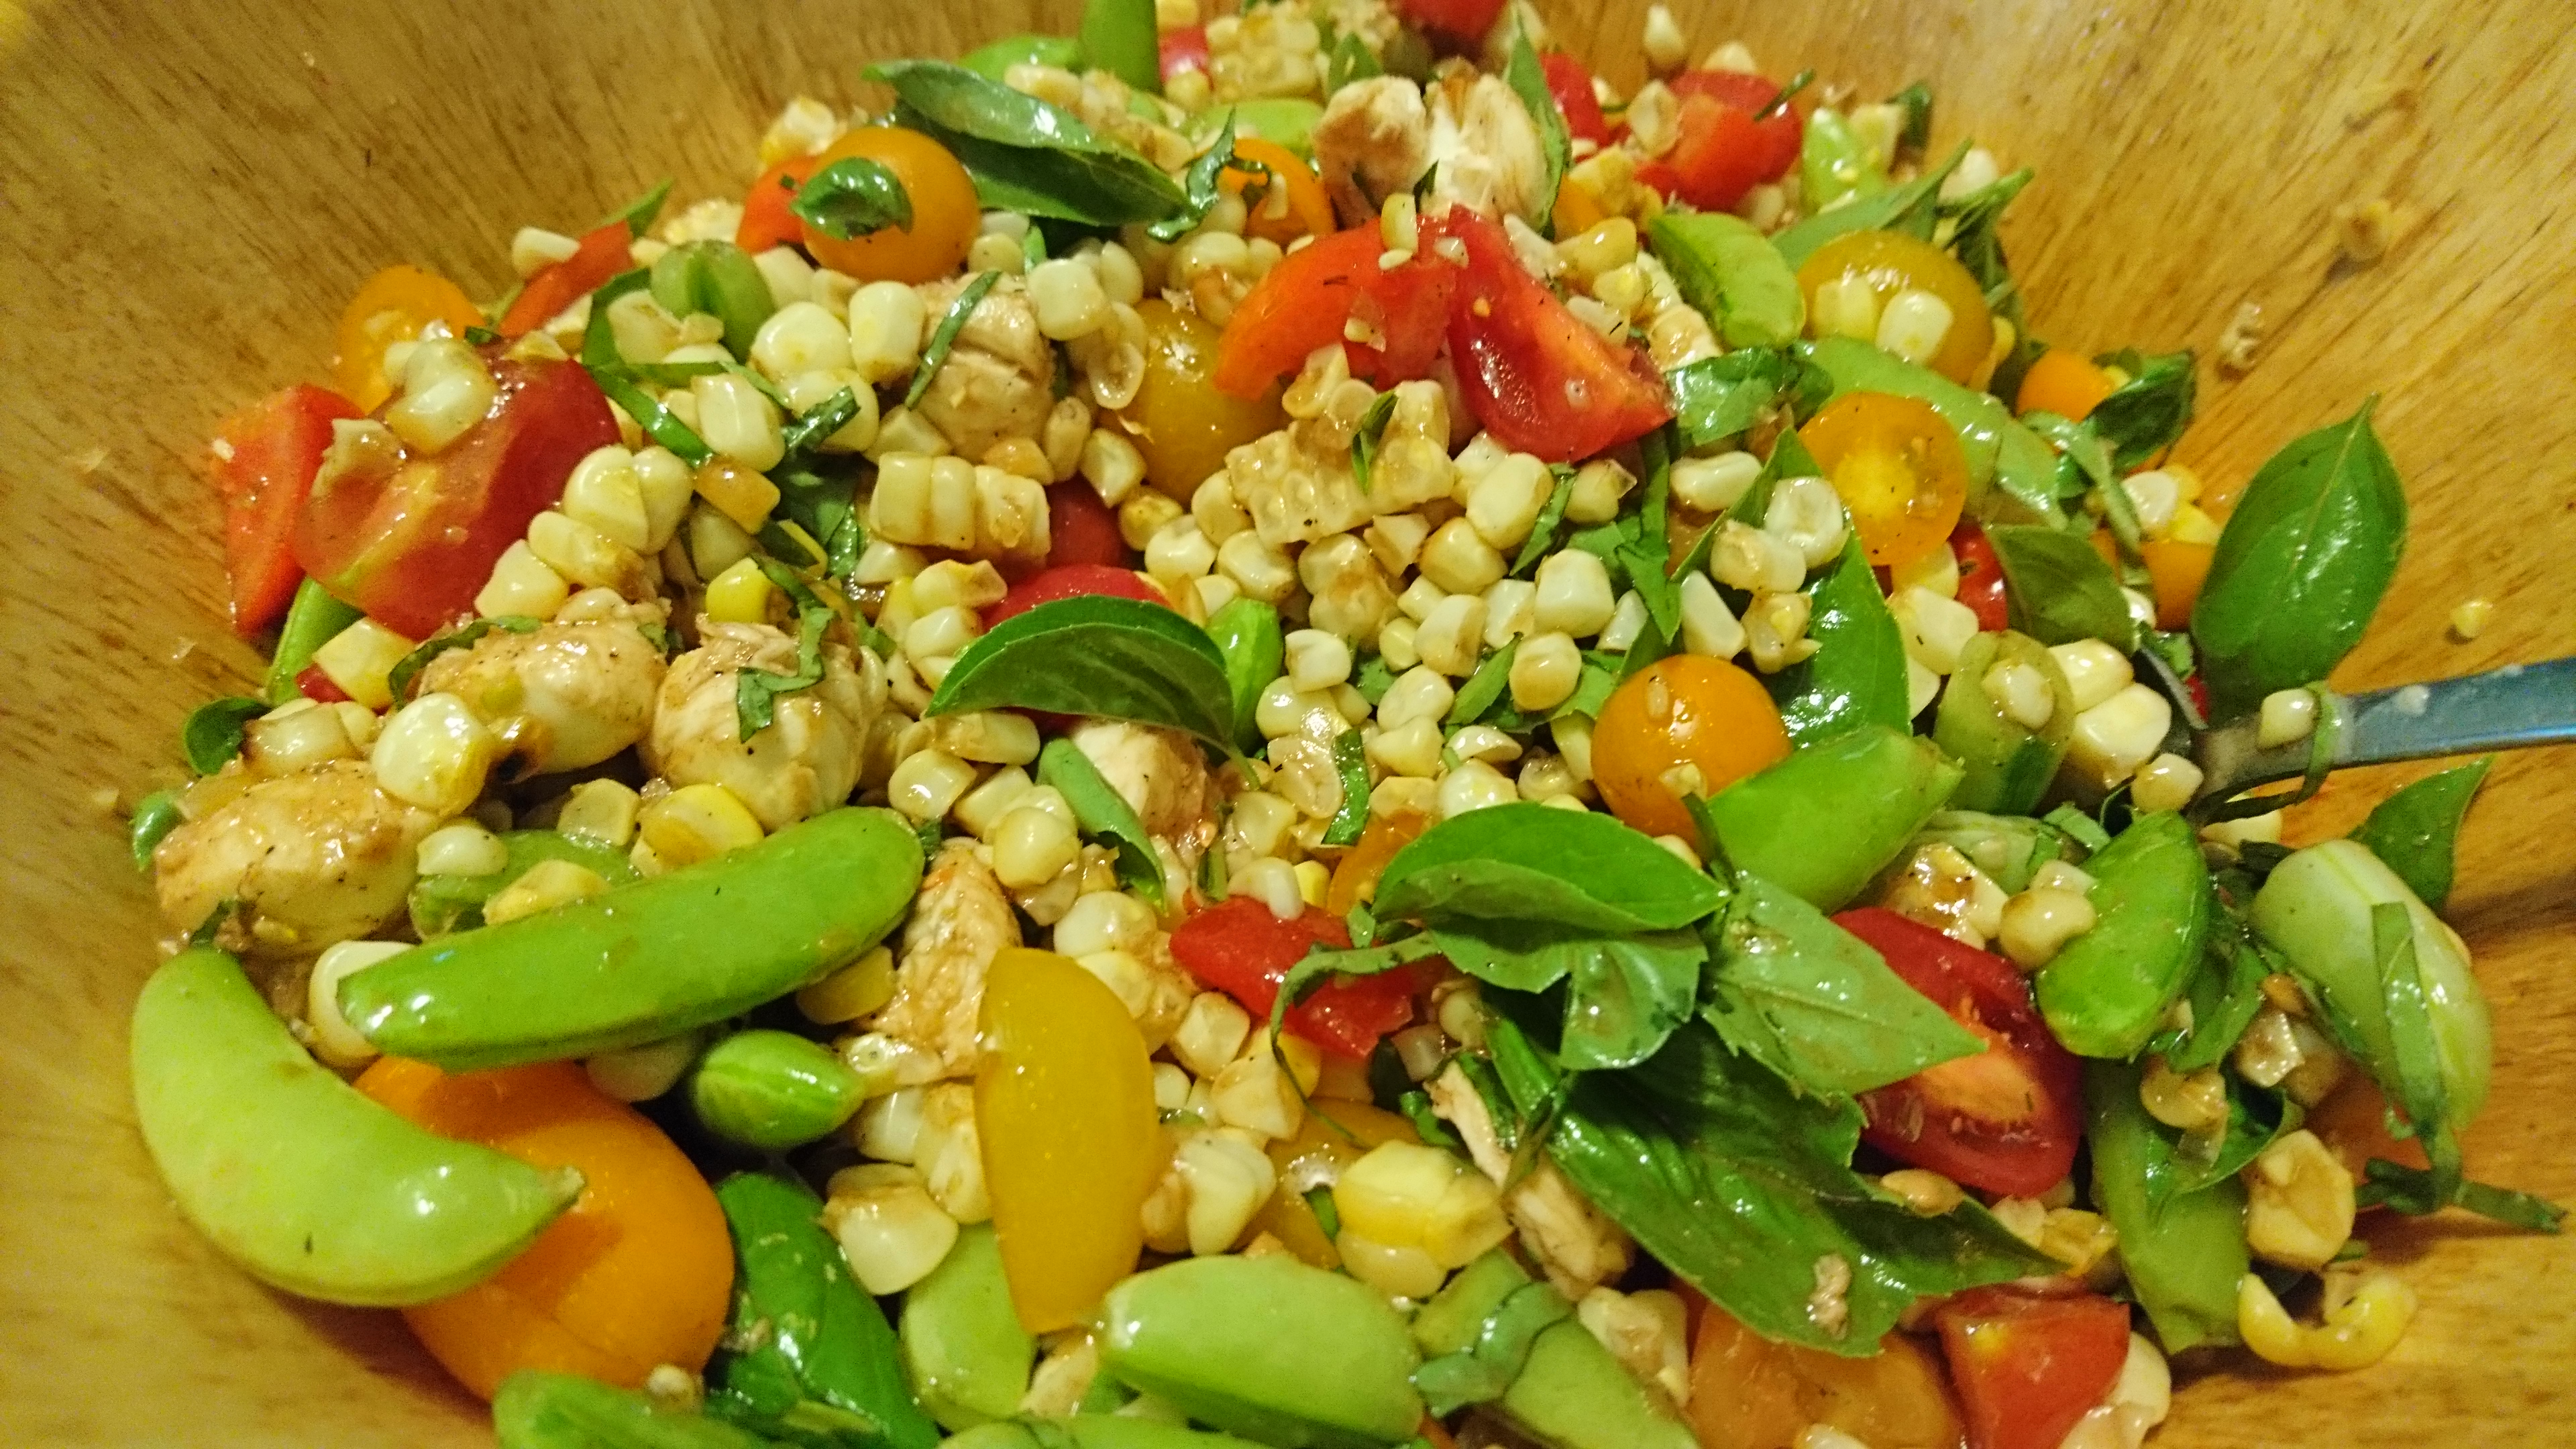 corn and basil salad photo